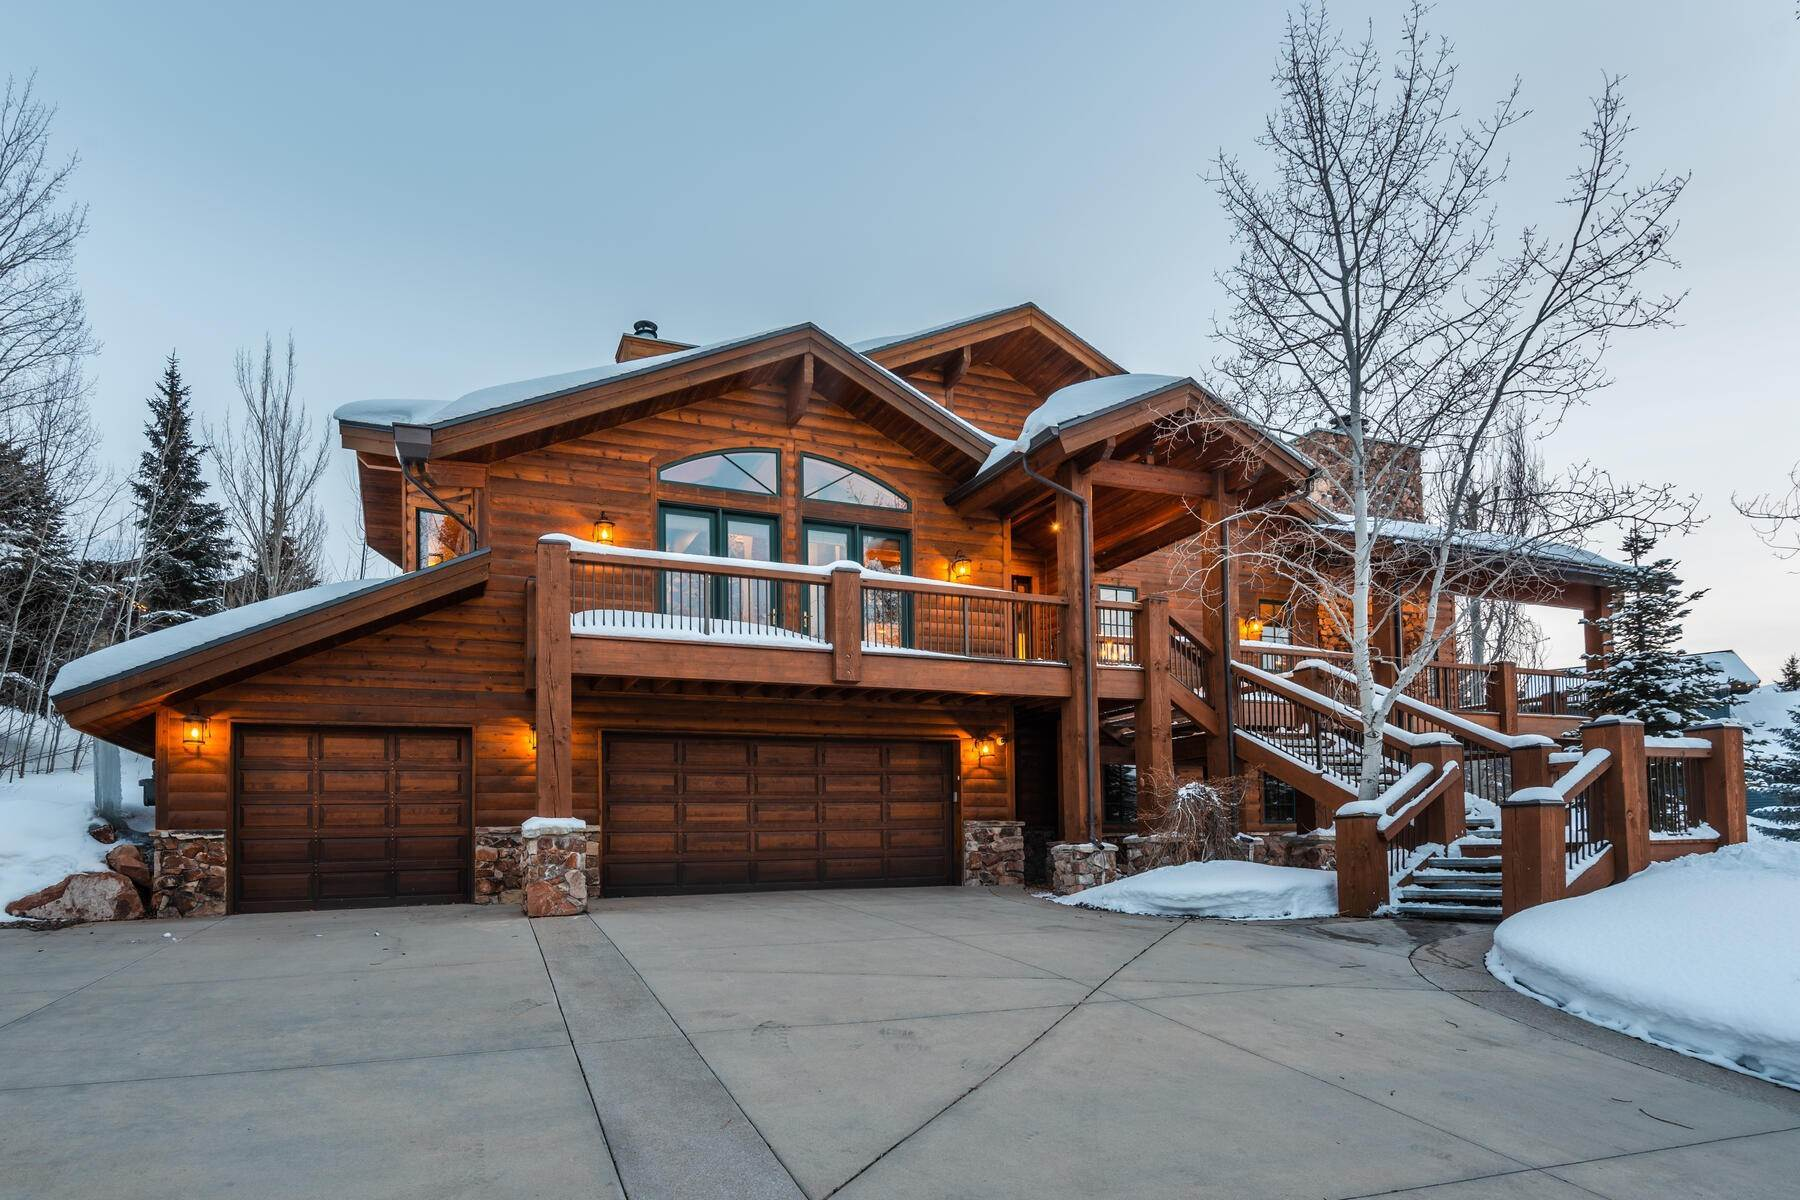 Single Family Homes for Sale at The Home You Have Been Waiting For 2490 Silver Cloud Dr Park City, Utah 84060 United States